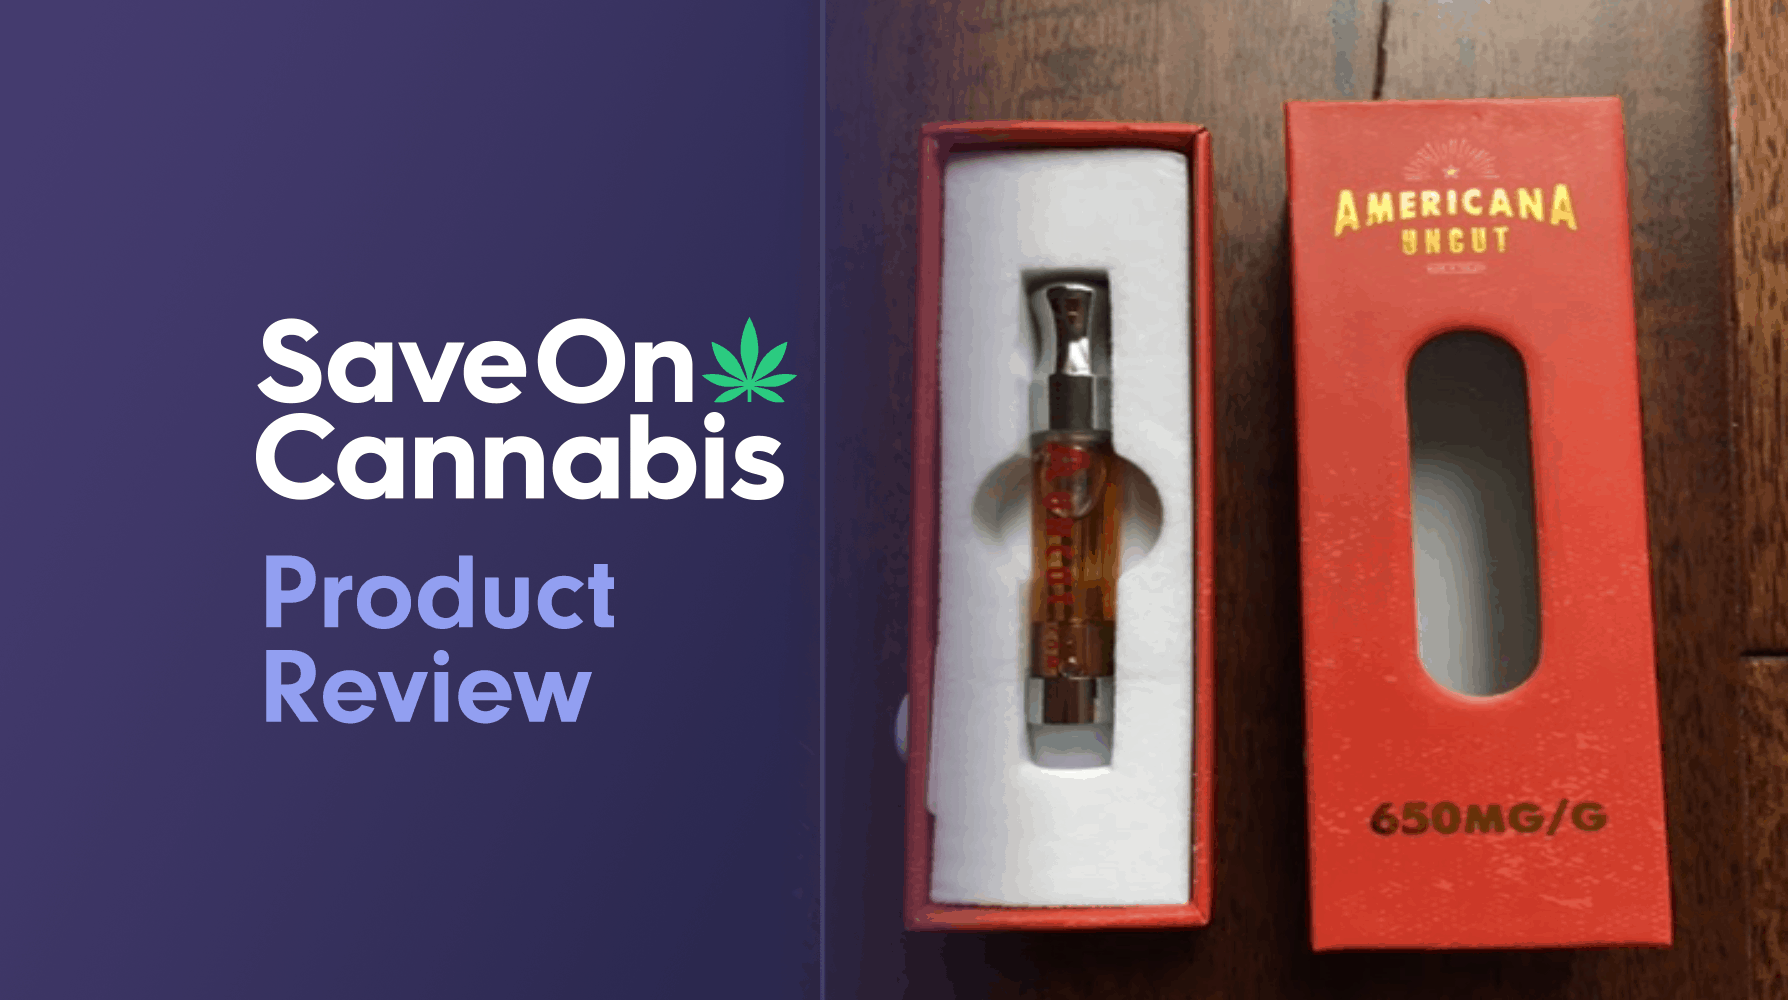 Americana Uncut OG Kush CBD 65% Vape Starter Kit Save On Cannabis Review Website